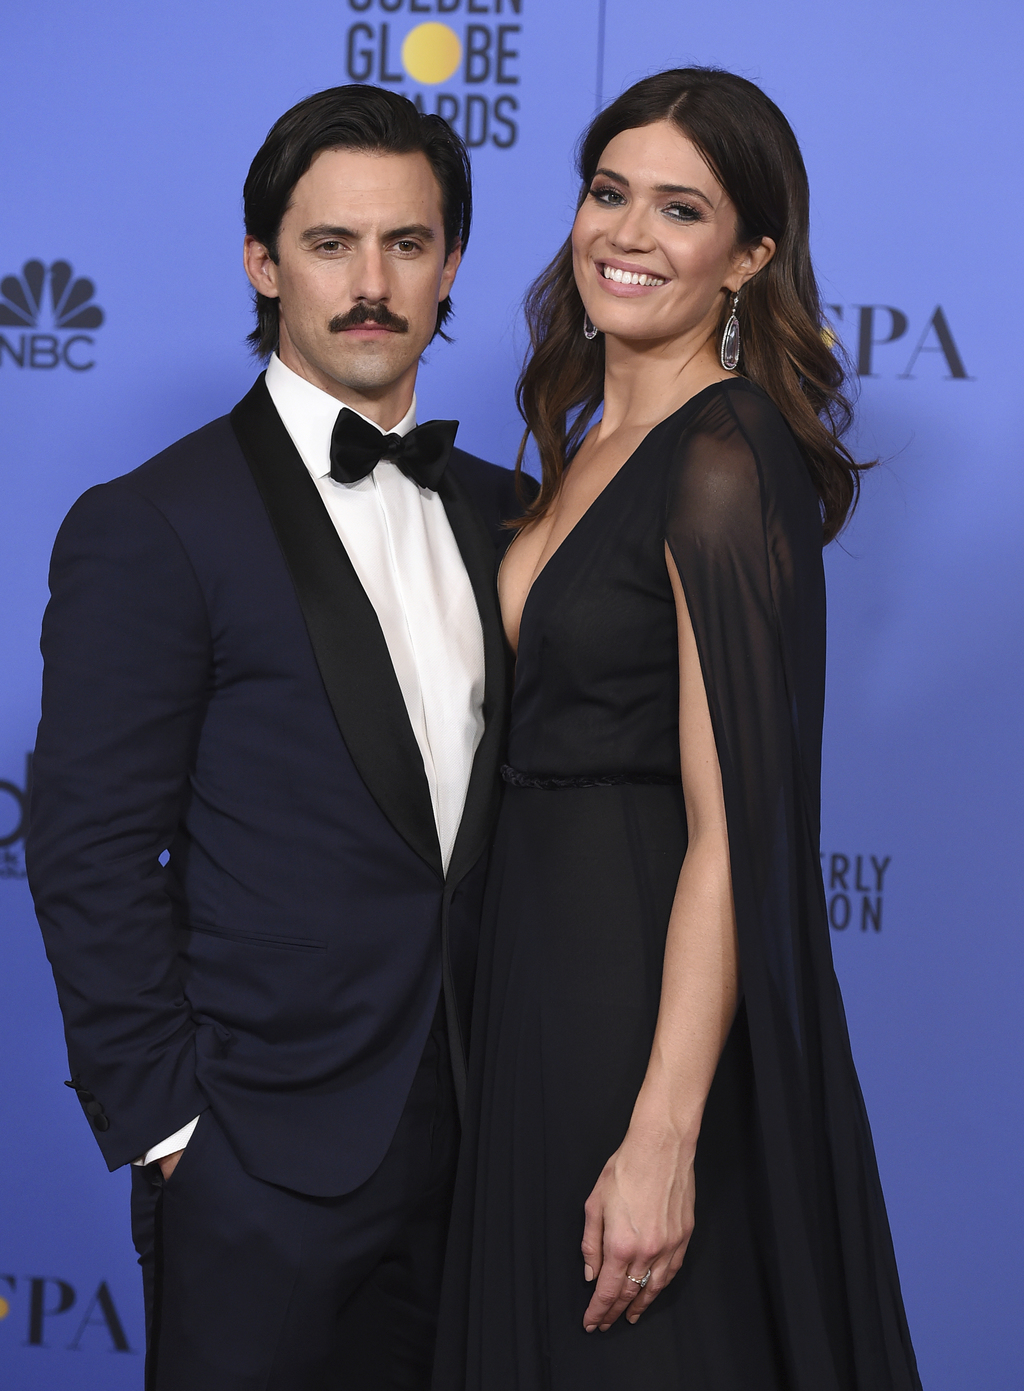 FILE - This Jan. 8, 2017 file photo shows Milo Ventimiglia, left, and Mandy Moore in the press room at the 74th annual Golden Globe Awa...